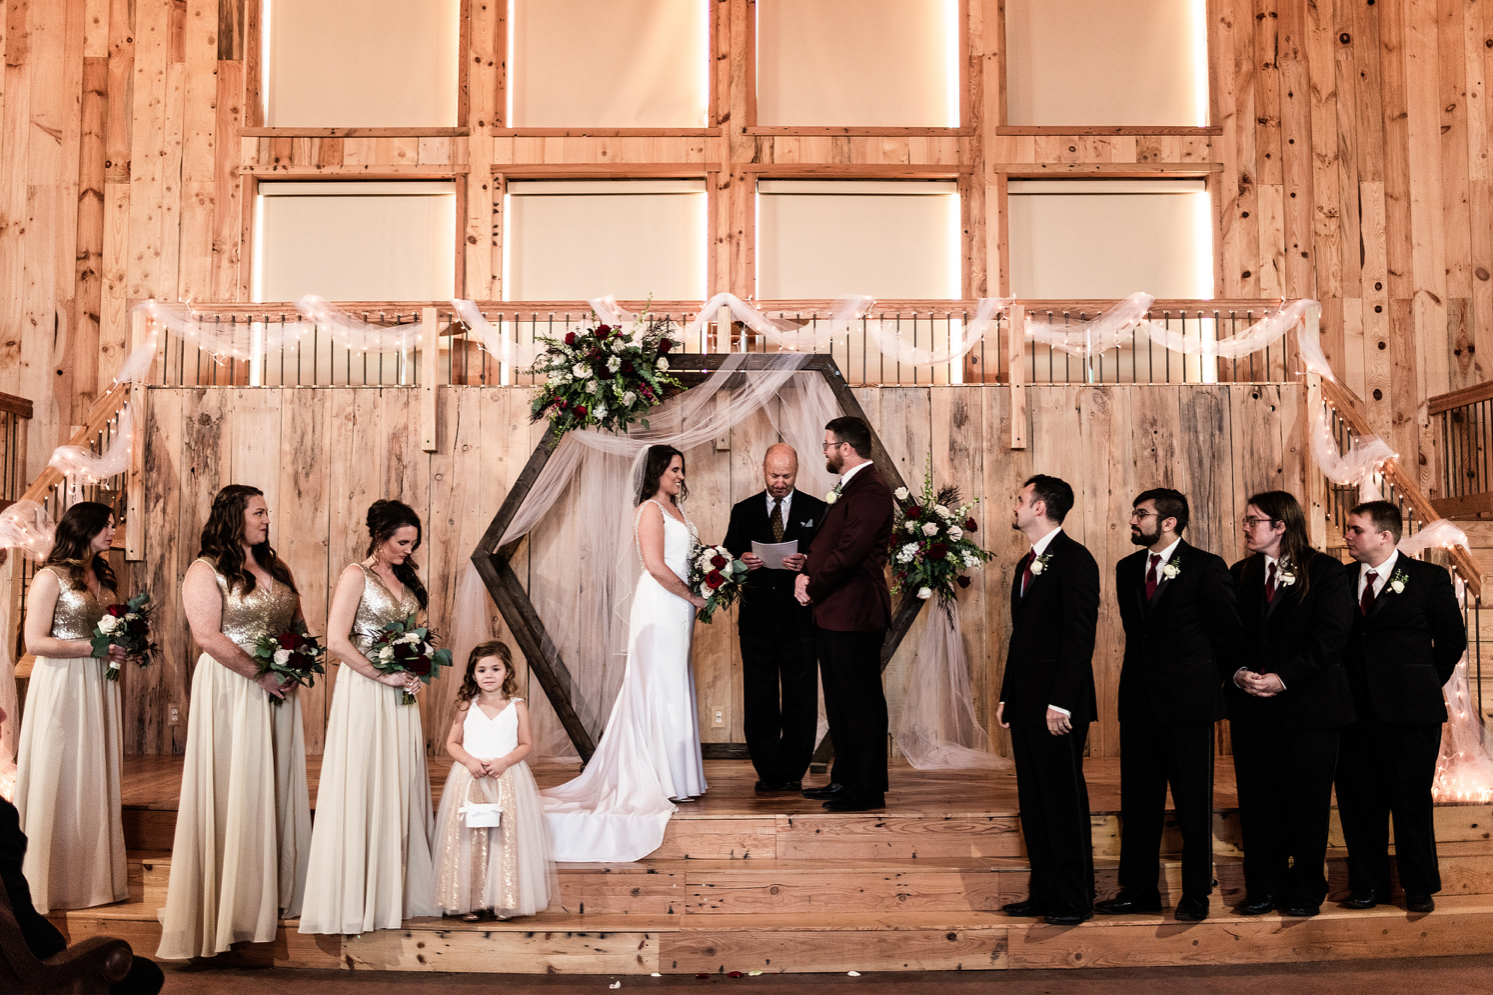 A wedding couple is getting married at the Three Sisters Barn in Iowa.